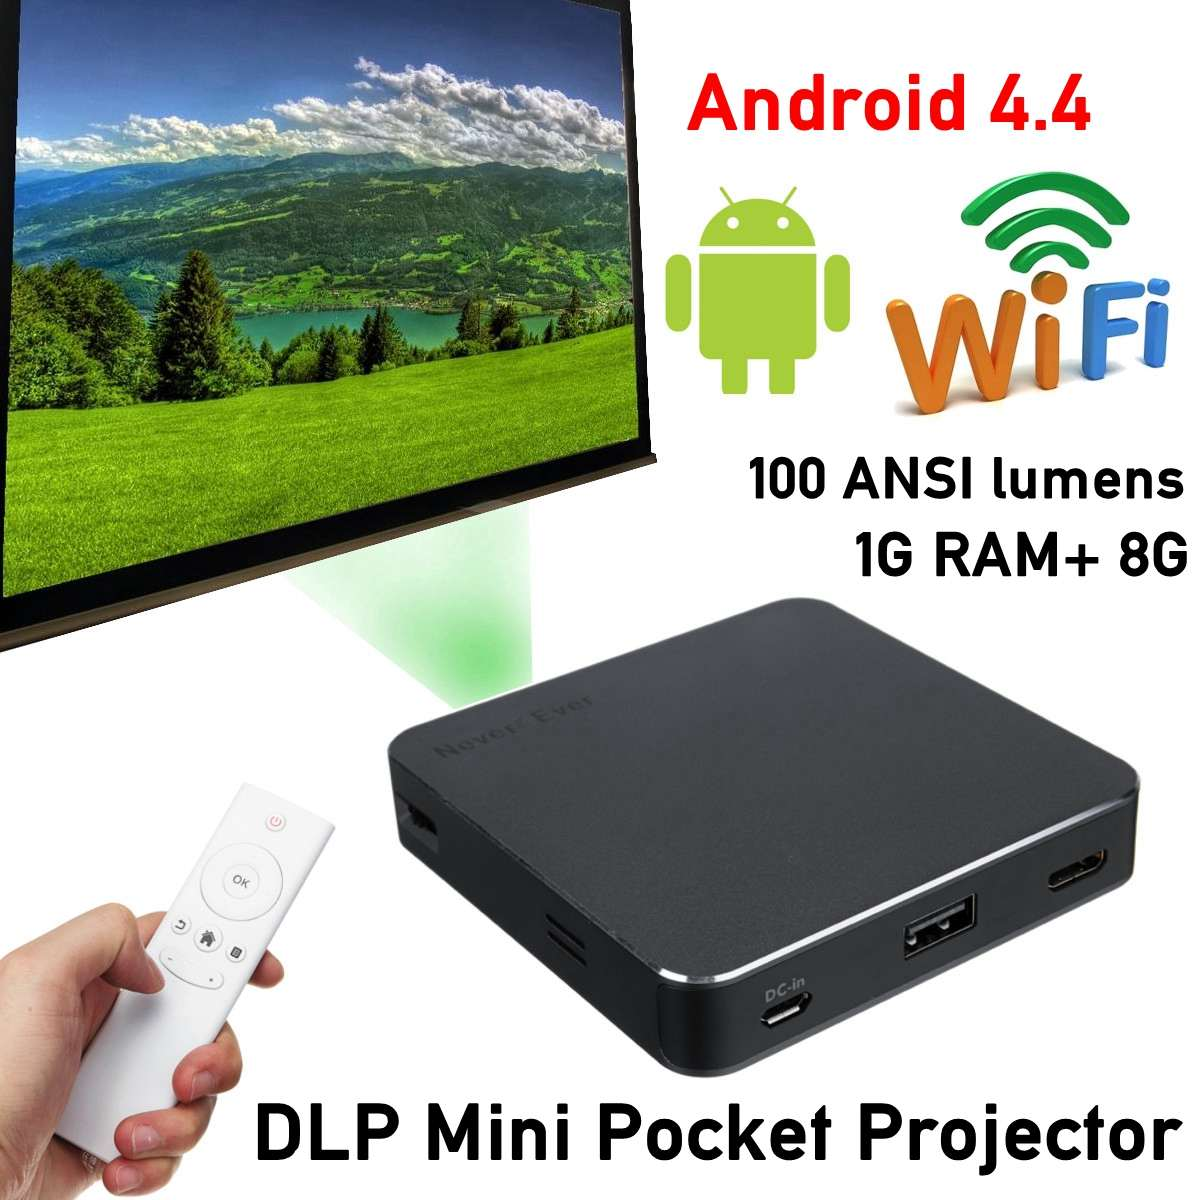 4K/8GB HD bluetooth Home Projector Home Theatre System Office Wifi DLP Mini P ocket Projector Android 7.1/4.0